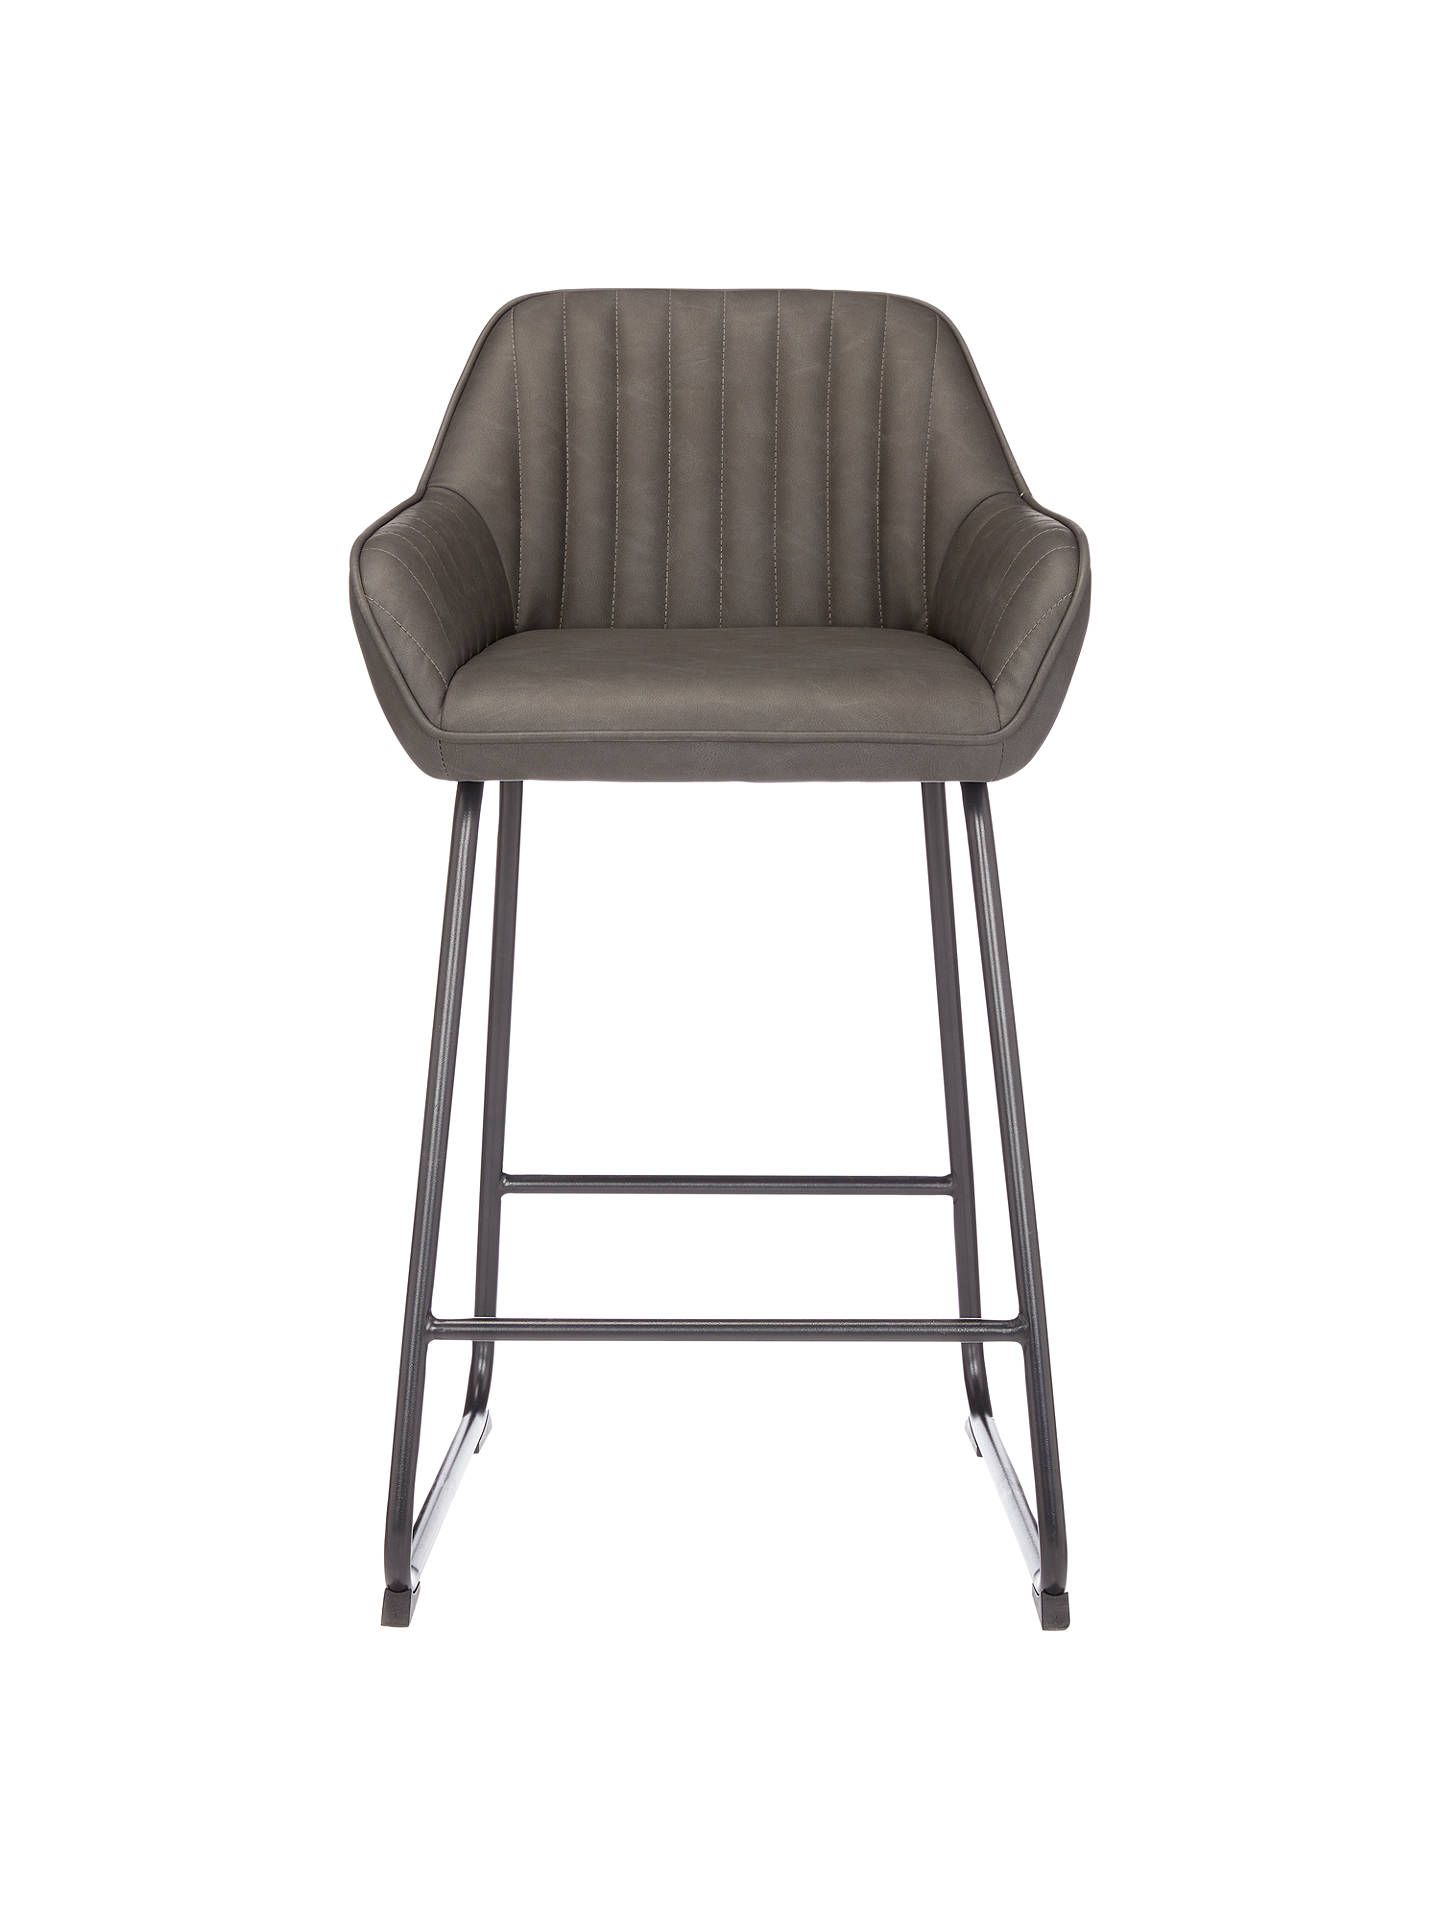 John Lewis & Partners Brooks Bar Chair, Antique Brown in 8